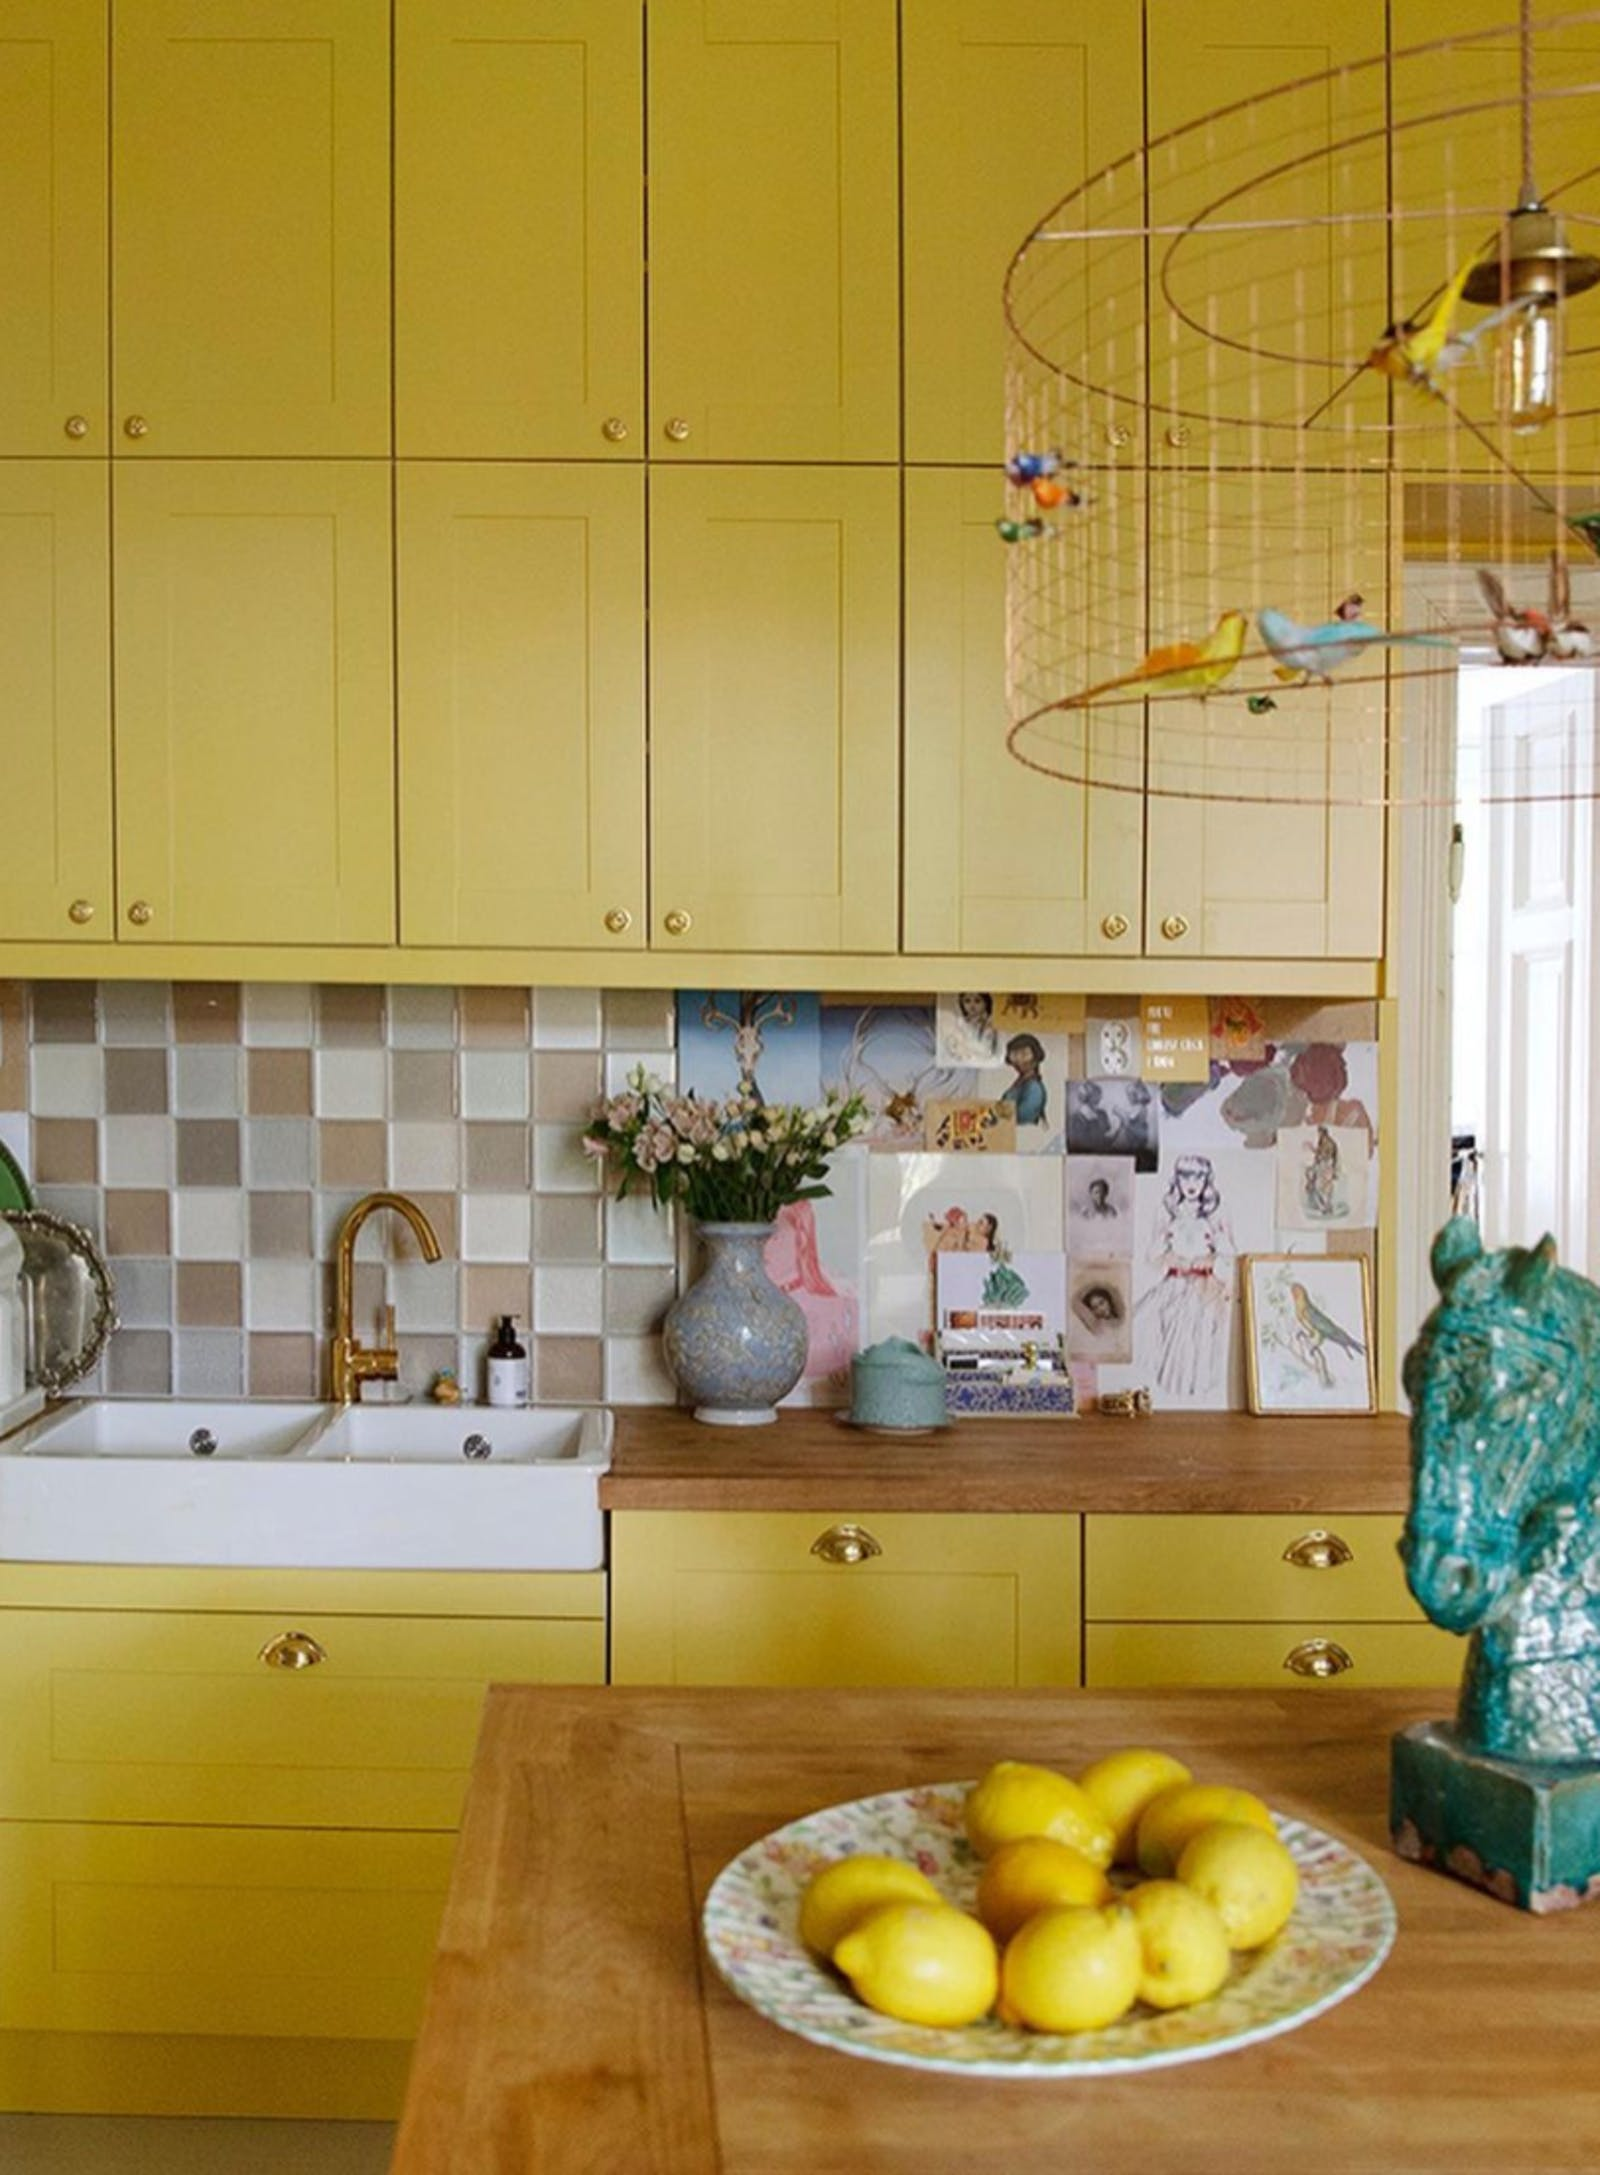 Kitchen painted in a vibrant yellow